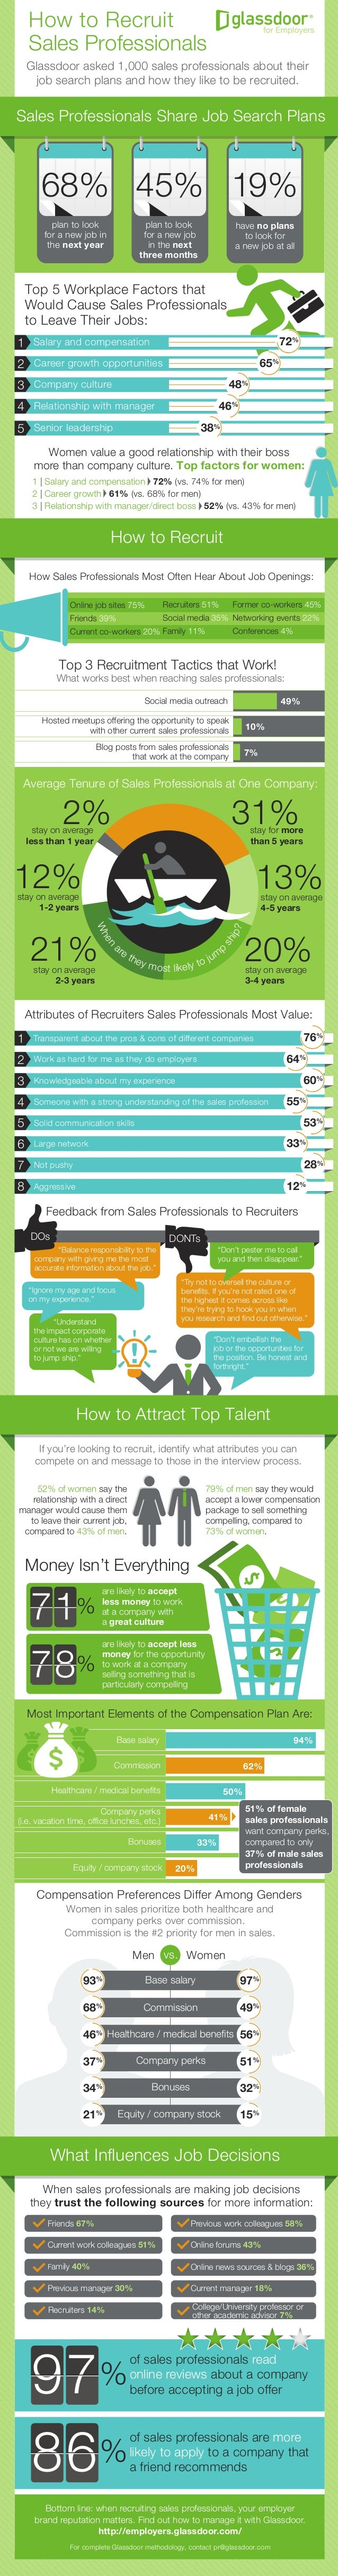 How to Recruit Sales Professionals Glassdoor asked 1,000 sales professionals about their job search plans and how they lik...